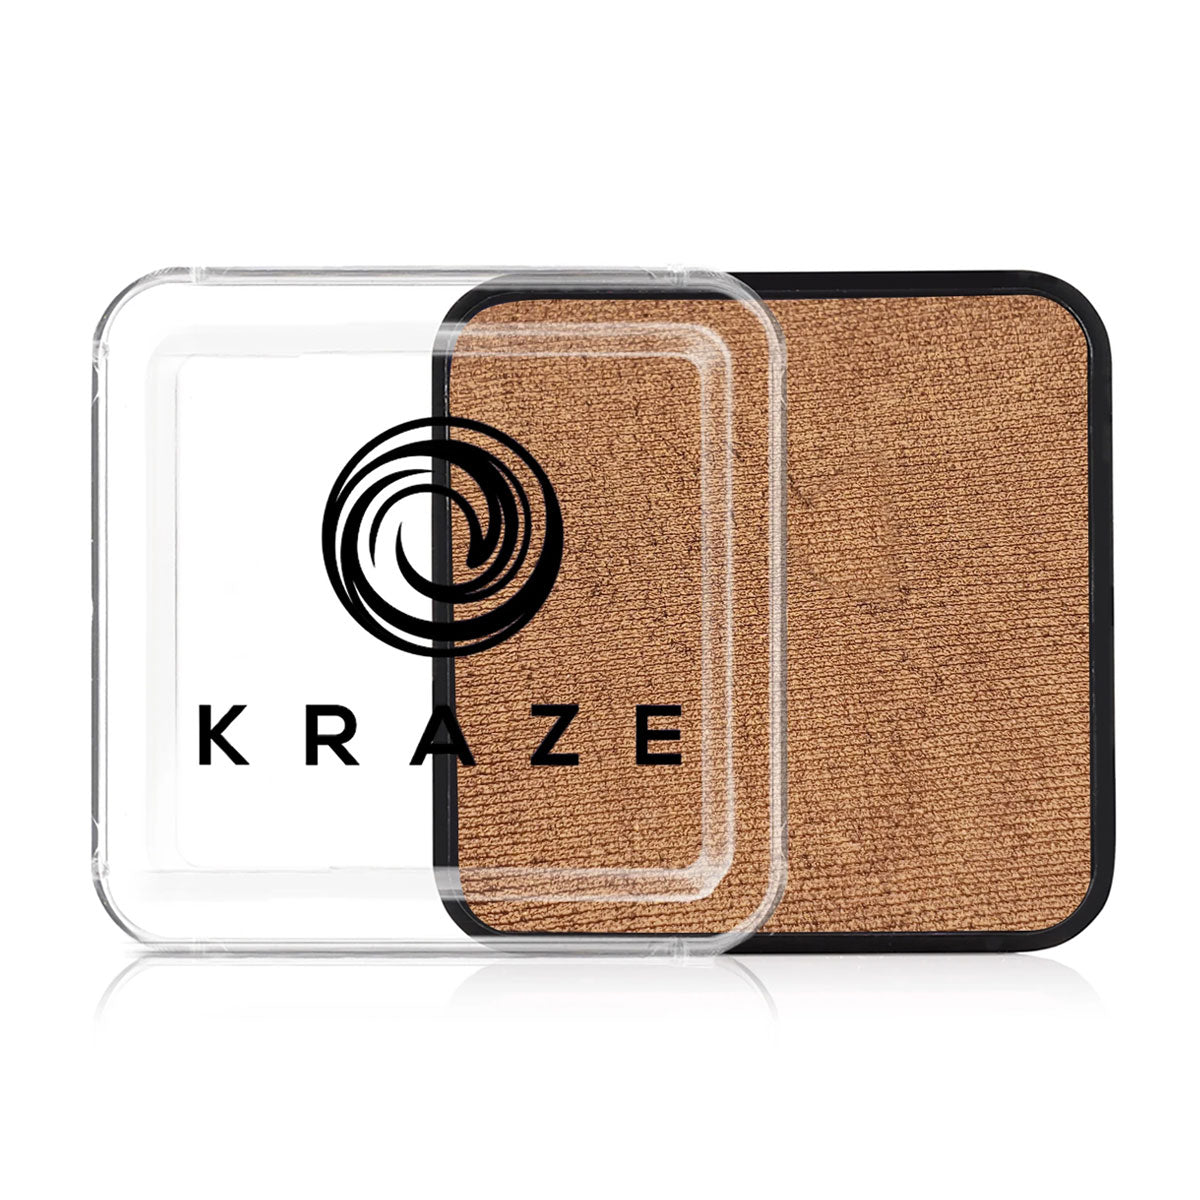 Metallic Copper Square 25g - Kraze